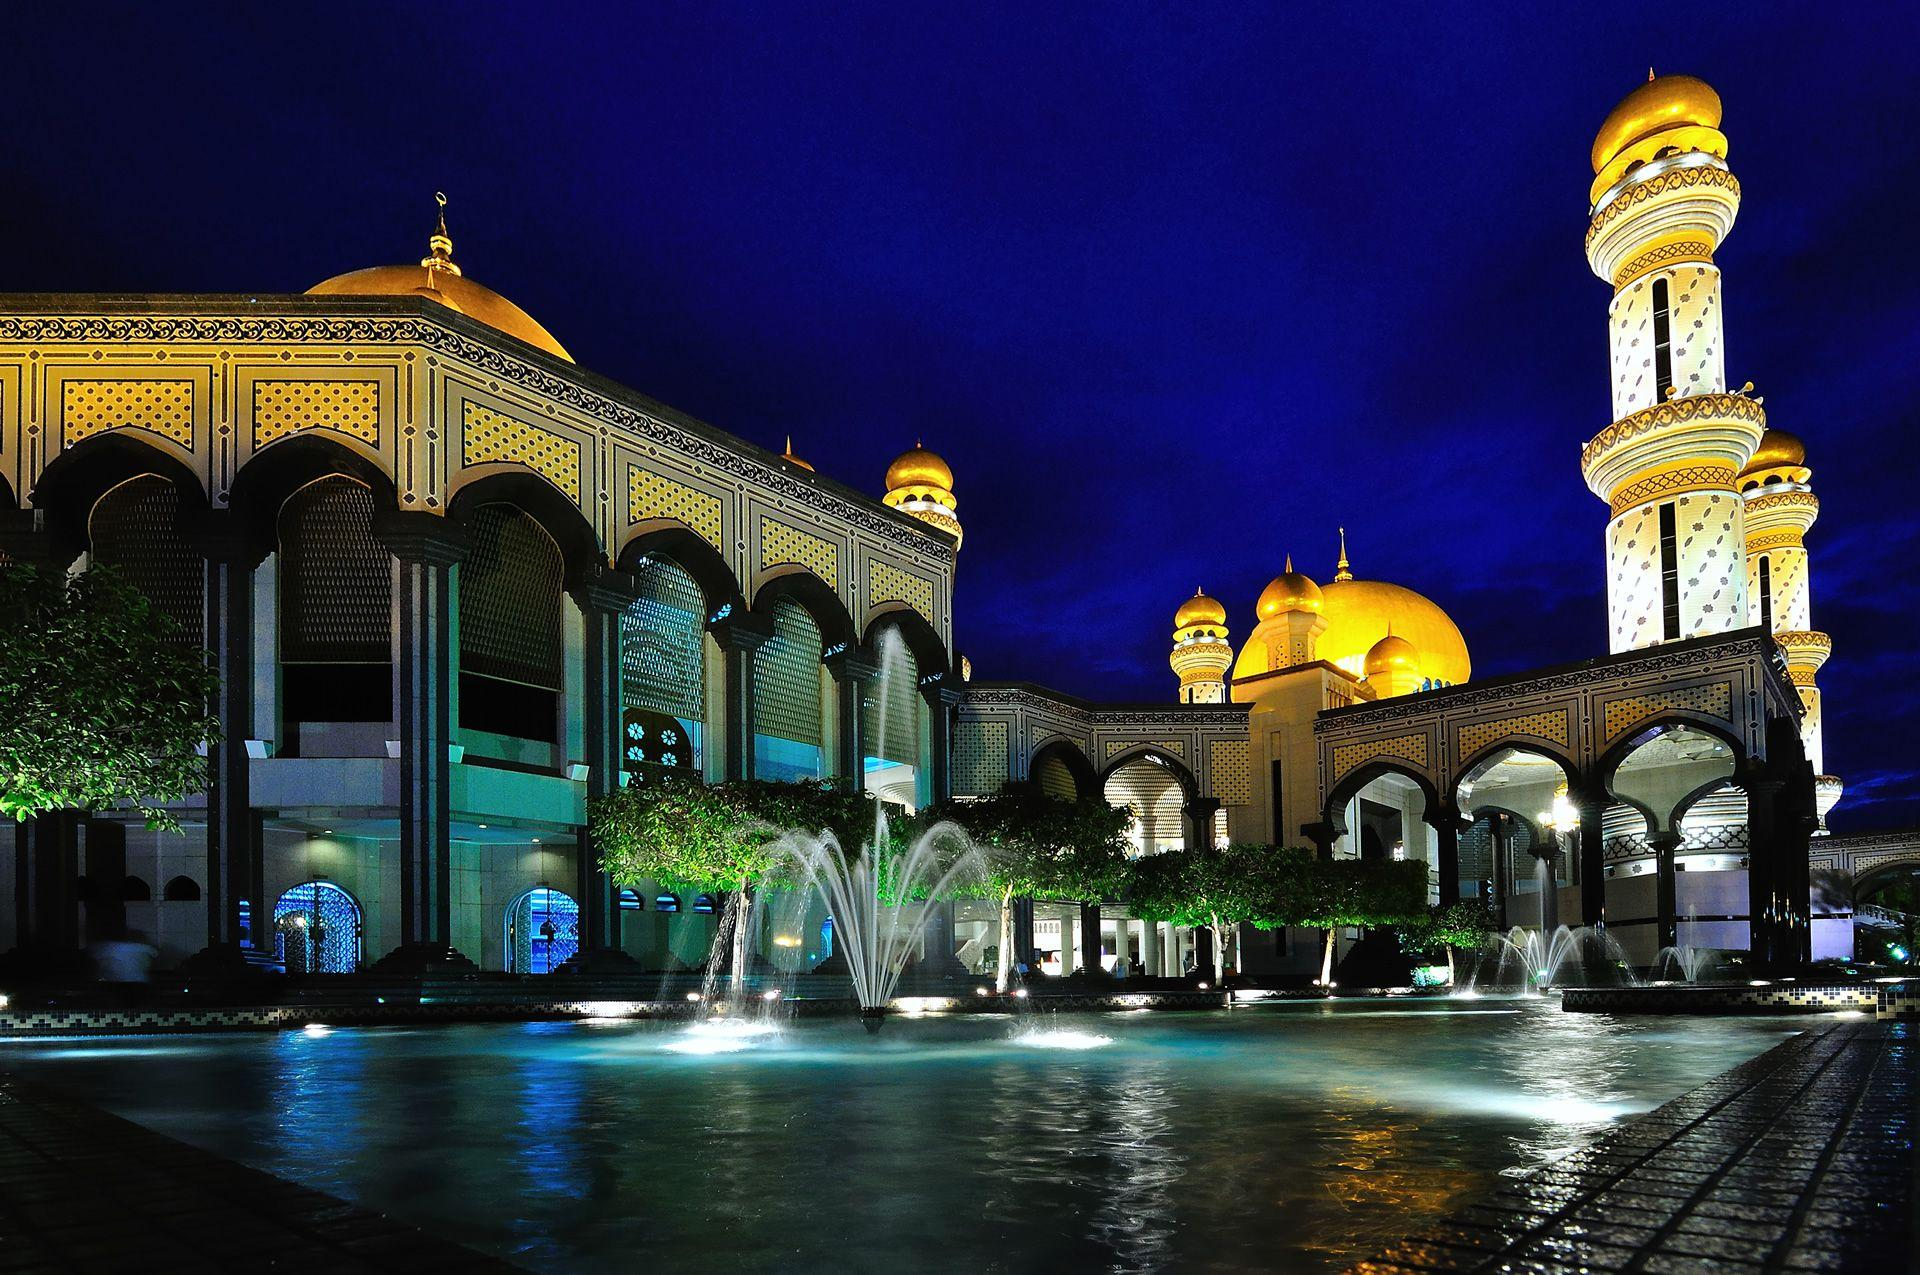 HD brunei super palace Wallpapers